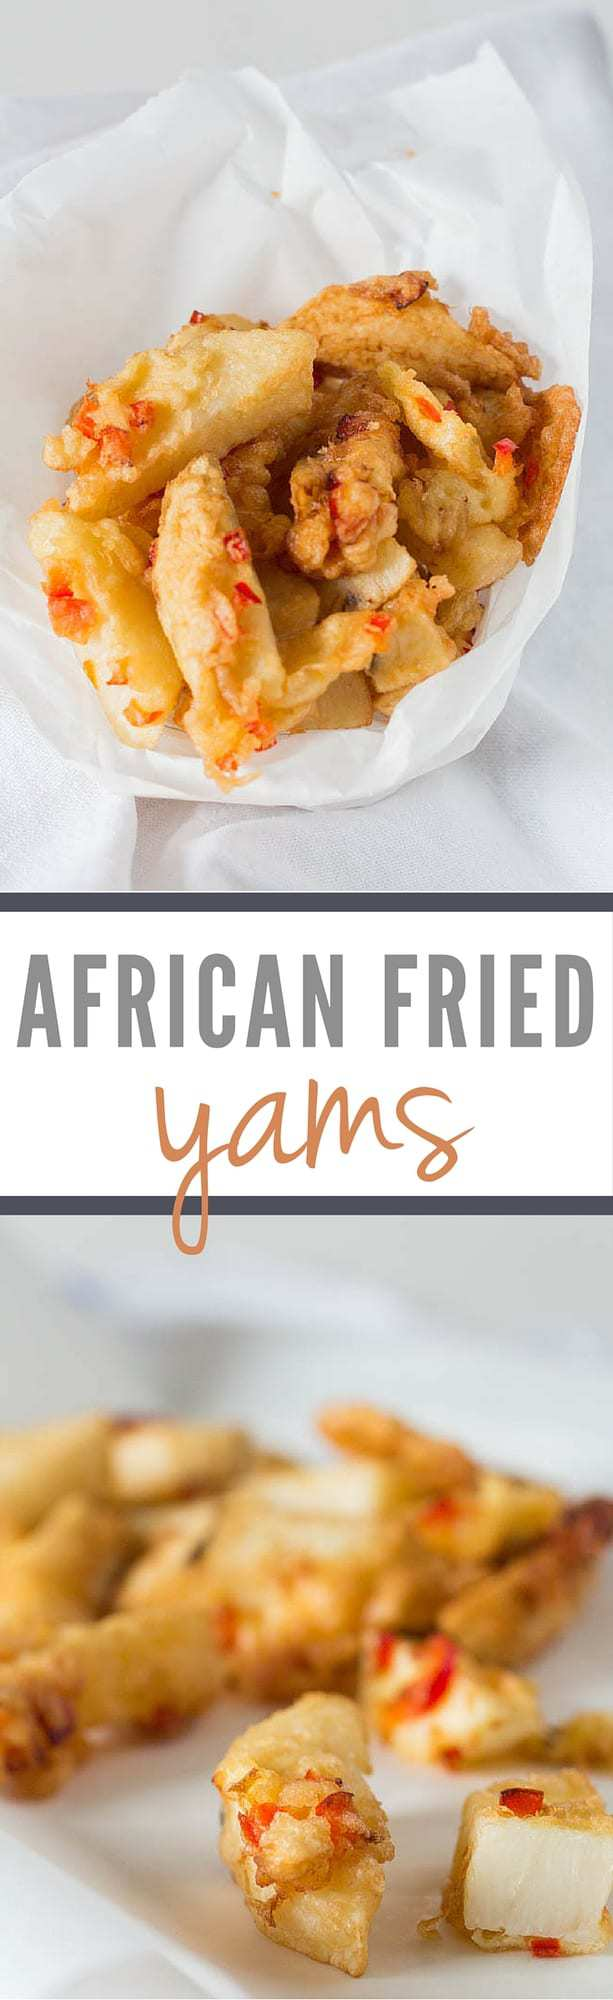 How to Cook African Yam Fries - Sierra Leone Flavours